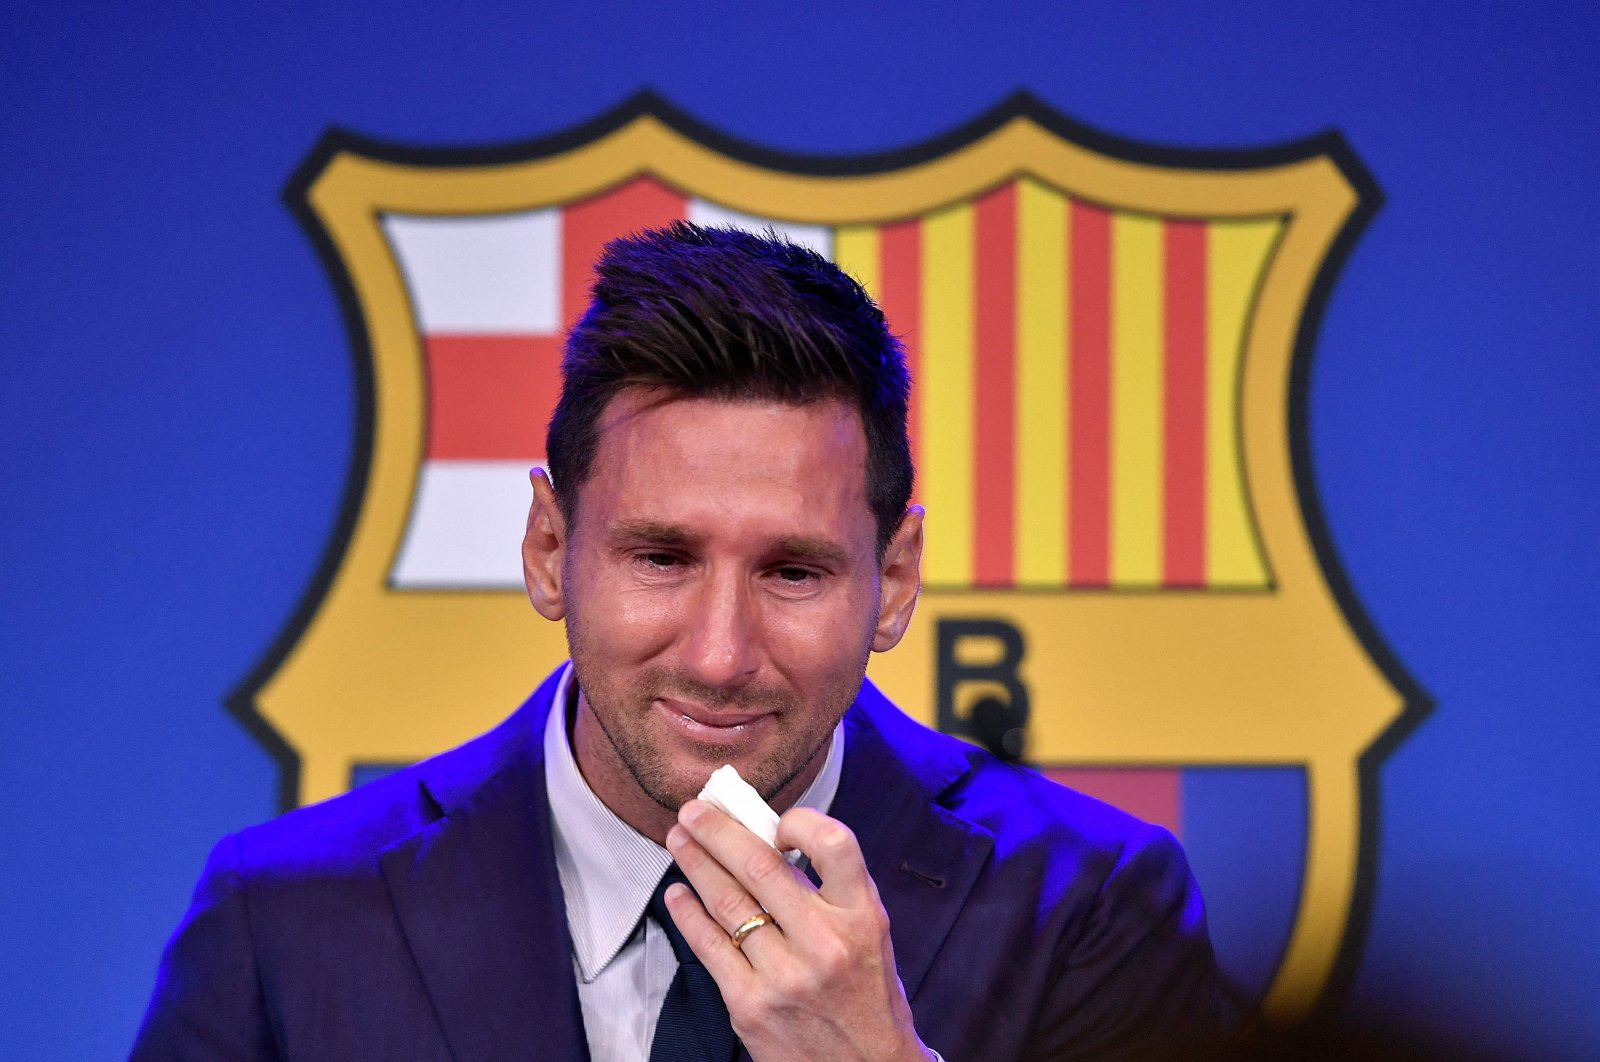 Barcelona's Argentinian forward Lionel Messi cries during a press conference at the Camp Nou stadium in Barcelona, Spain, Aug. 8, 2021. (AFP Photo)